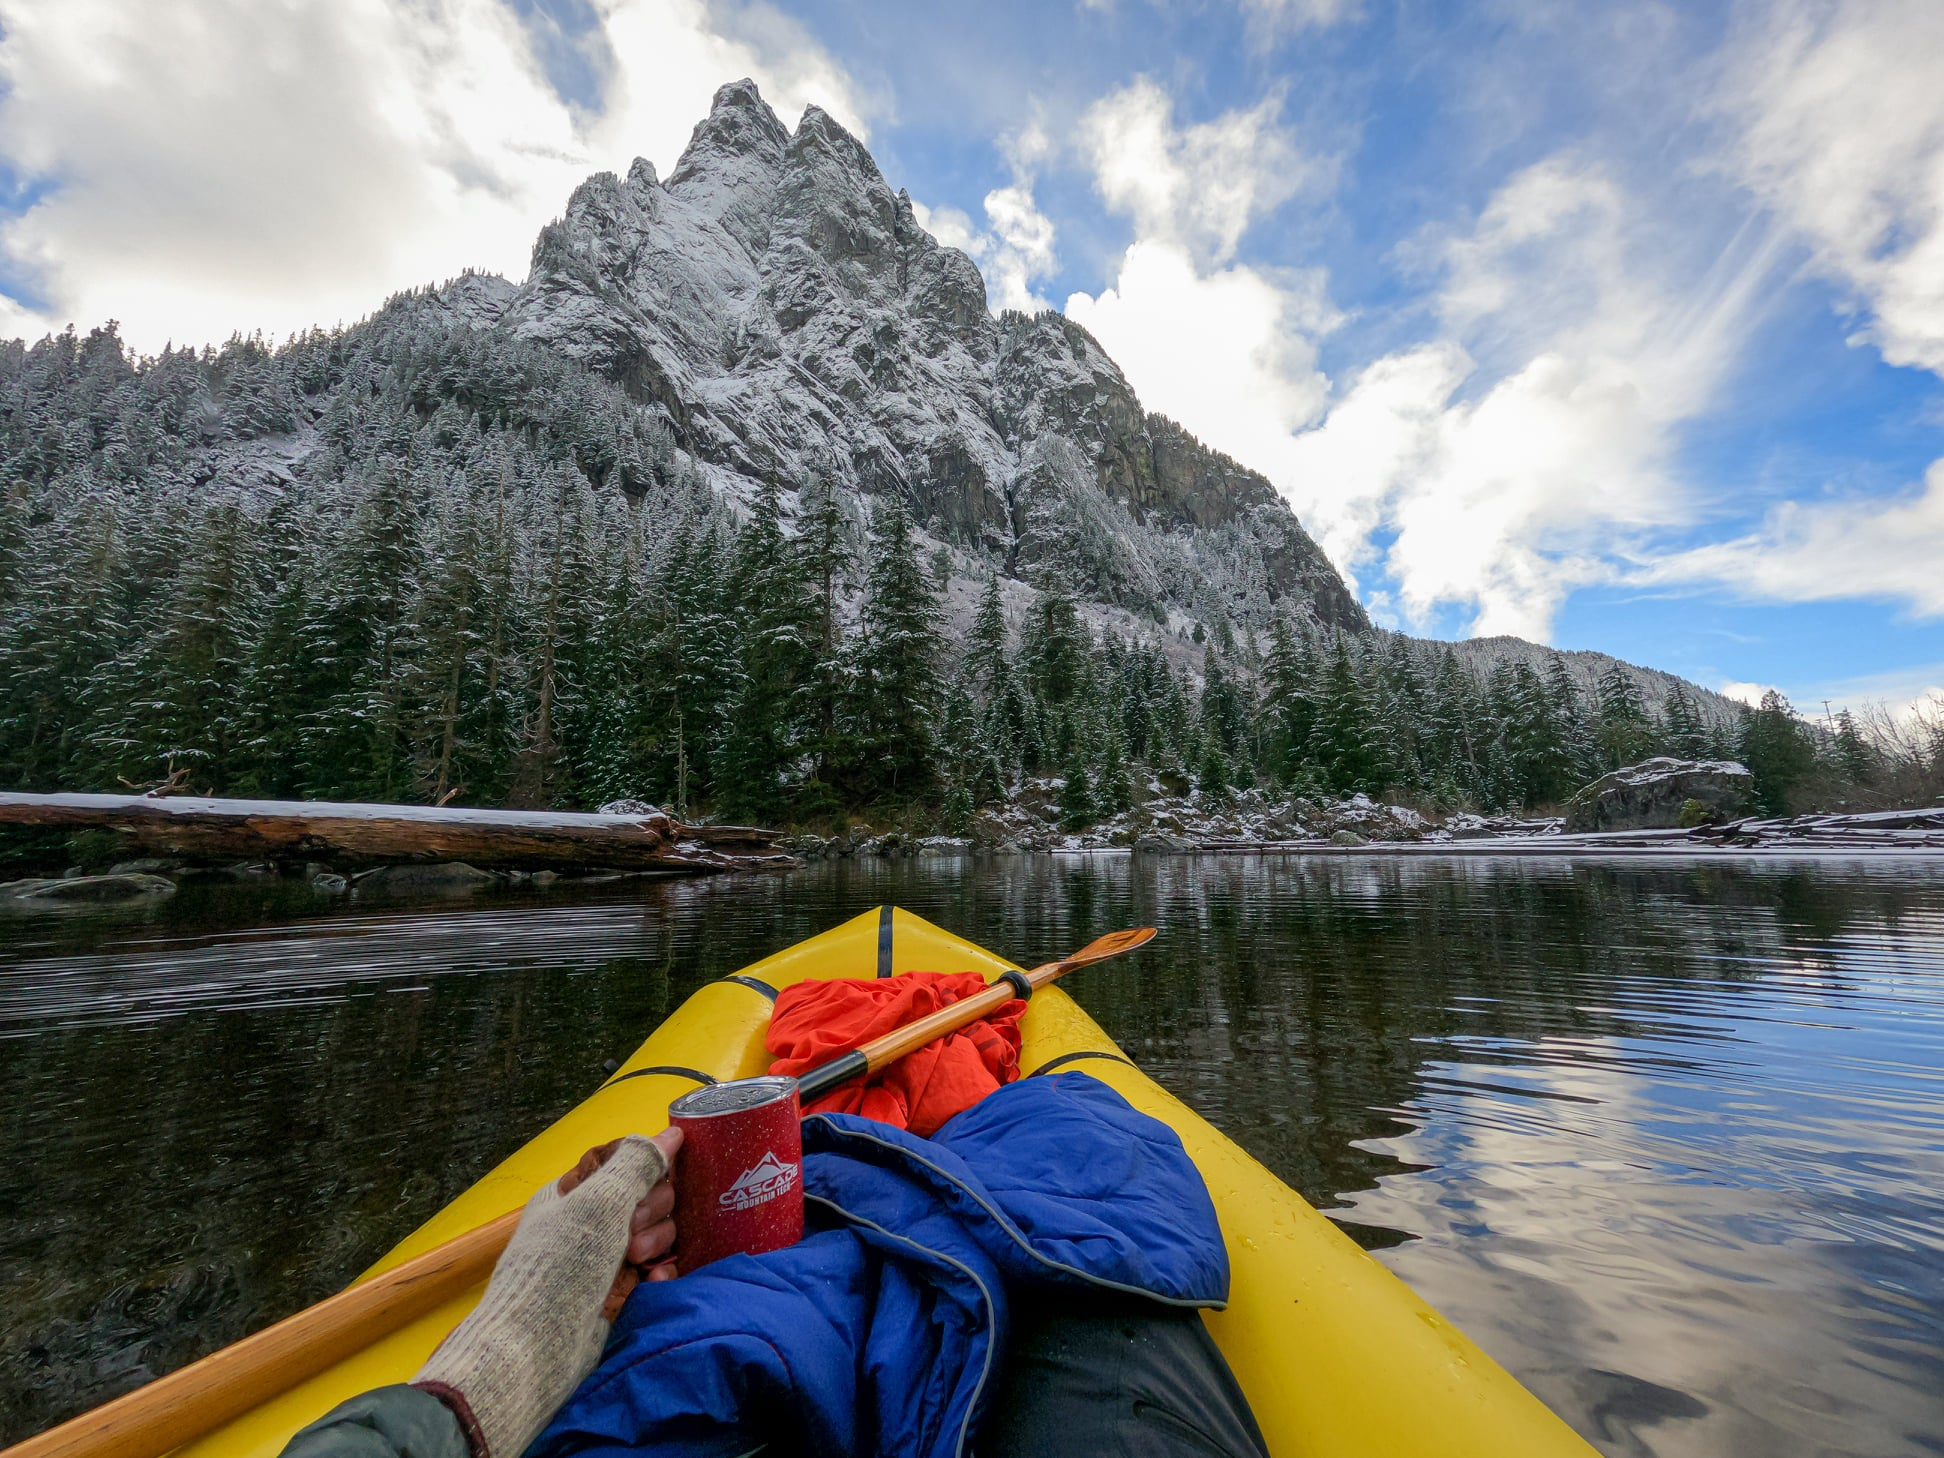 Winter Adventures: Tips for Adventuring In Cold Weather from the CMT Outbounders - Winter Kayaking Blanket